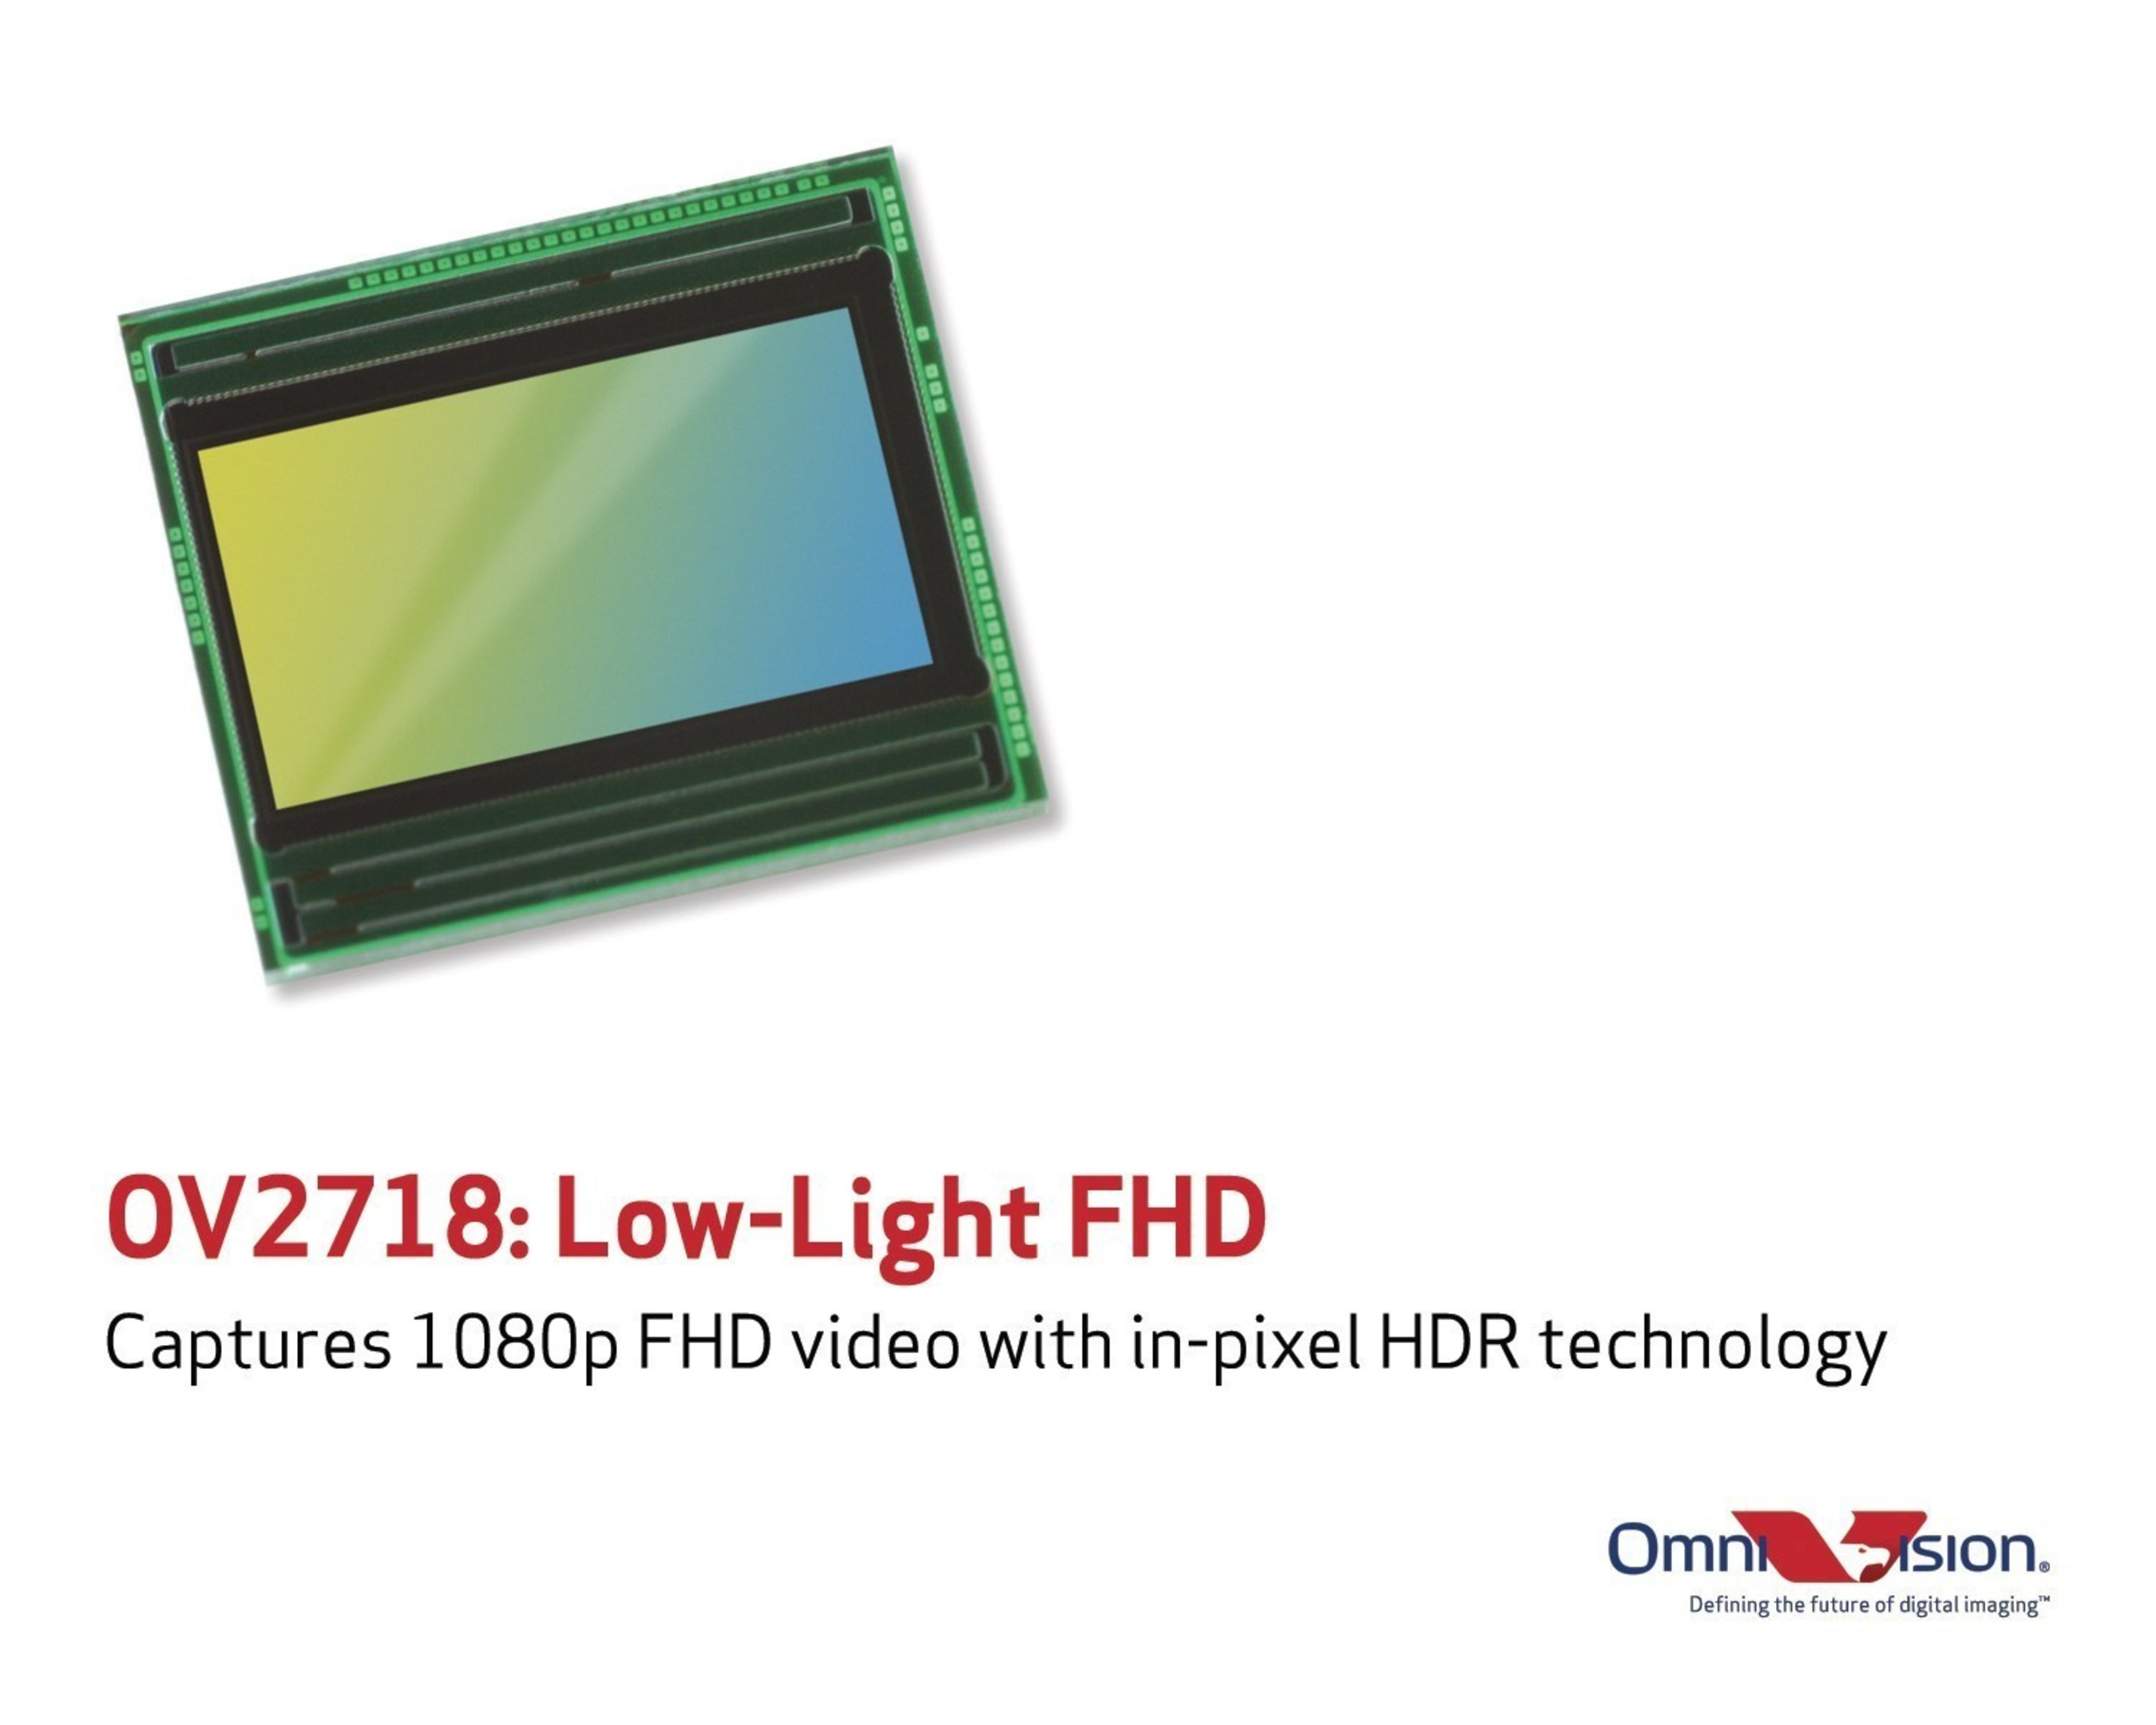 OV2718 brings best-in-class low light sensitivity and full high definition video to mainstream security applications.